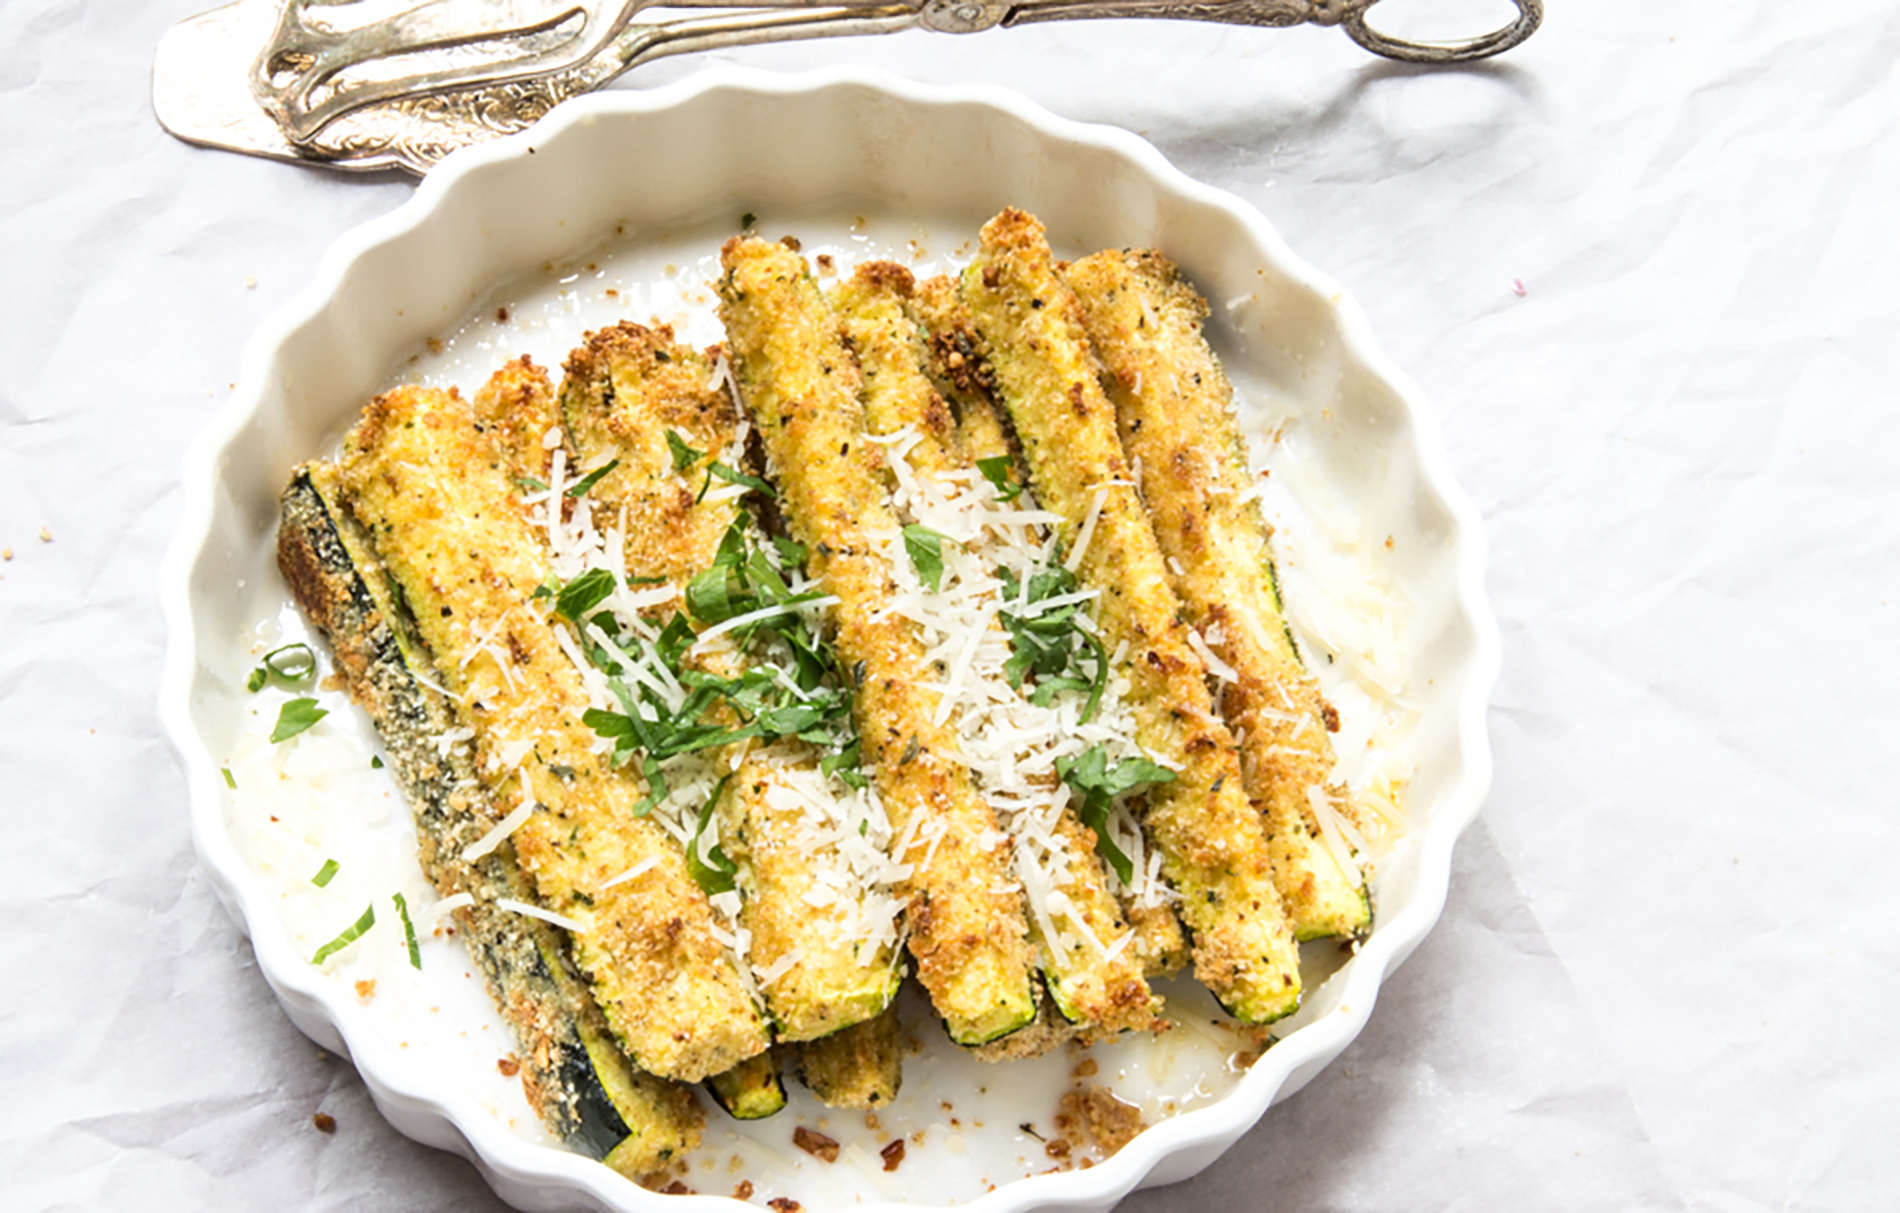 Roasted zucchini with Parmesan cheese